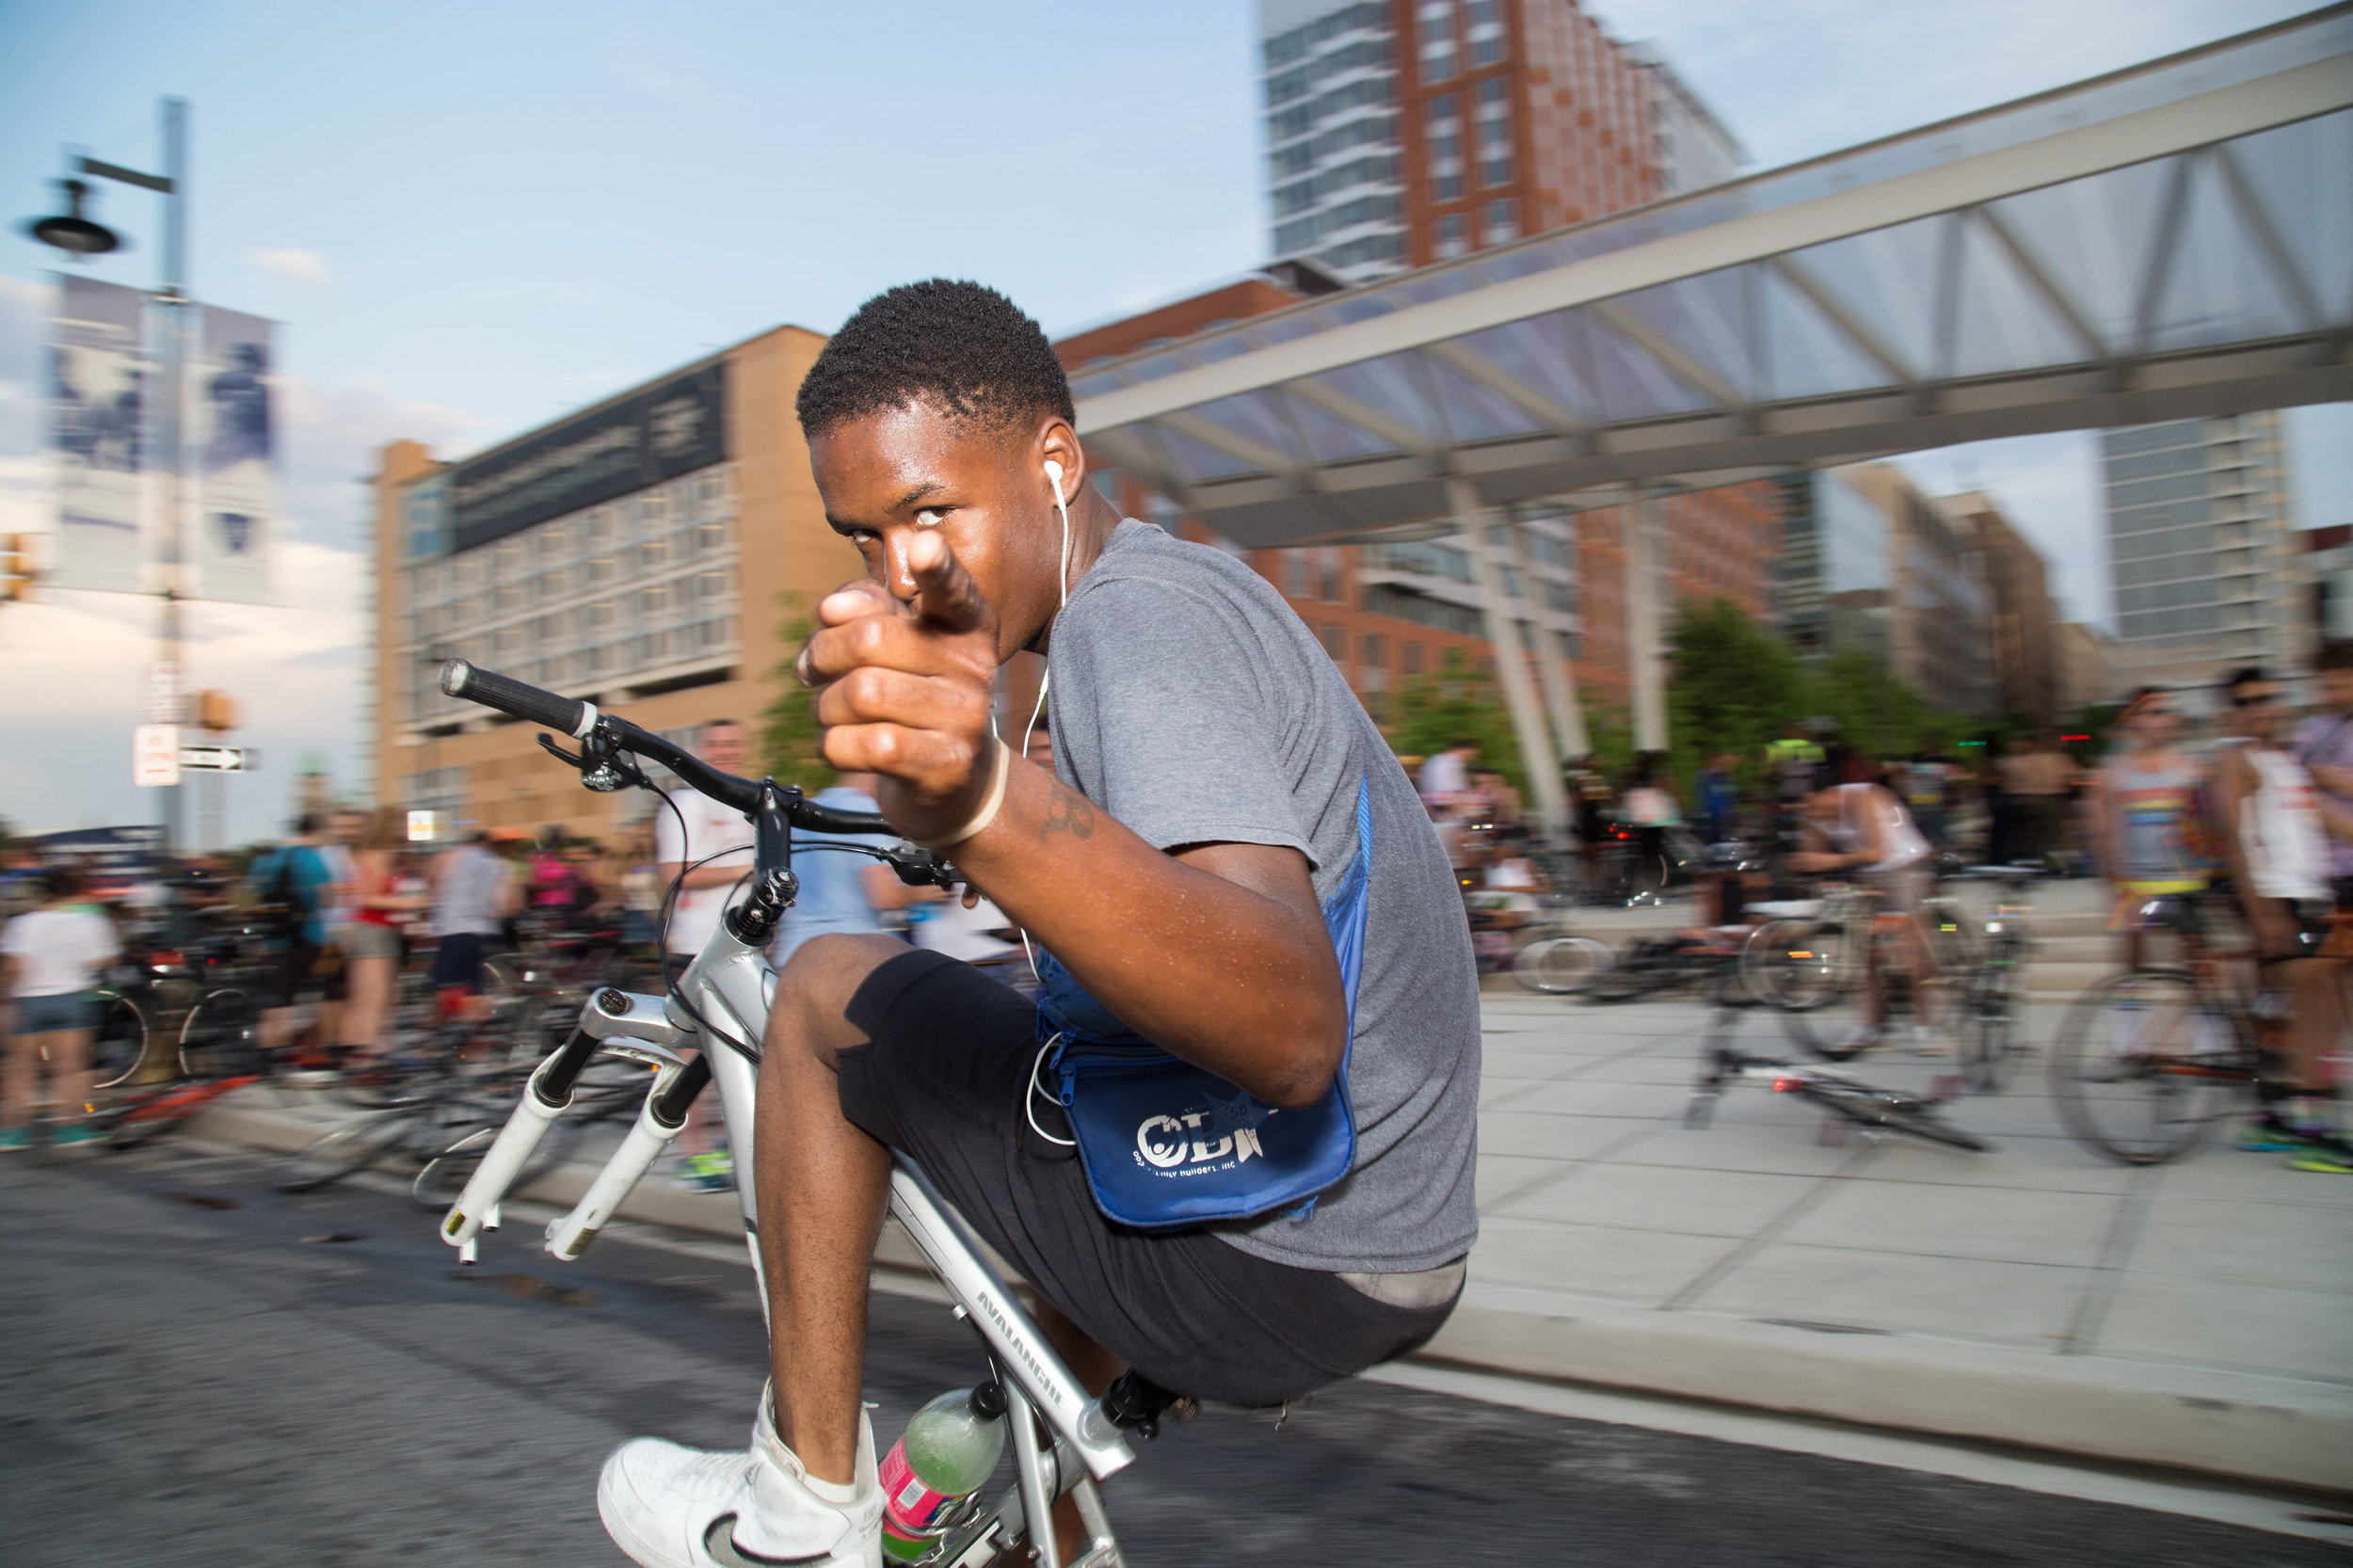 Biker Boy Dez  photographed by E. Brady Robinson, 2019.  Bike Party! Yelling the words is a call to action, a signal that it's the last Friday of the month and time to meet friends and celebrate life in Baltimore on a bike. For more visit  Baltimore Bike Party: Pride Ride Photo Essay in Bmoreart .  Baltimore Bike Party  = best night of the month!